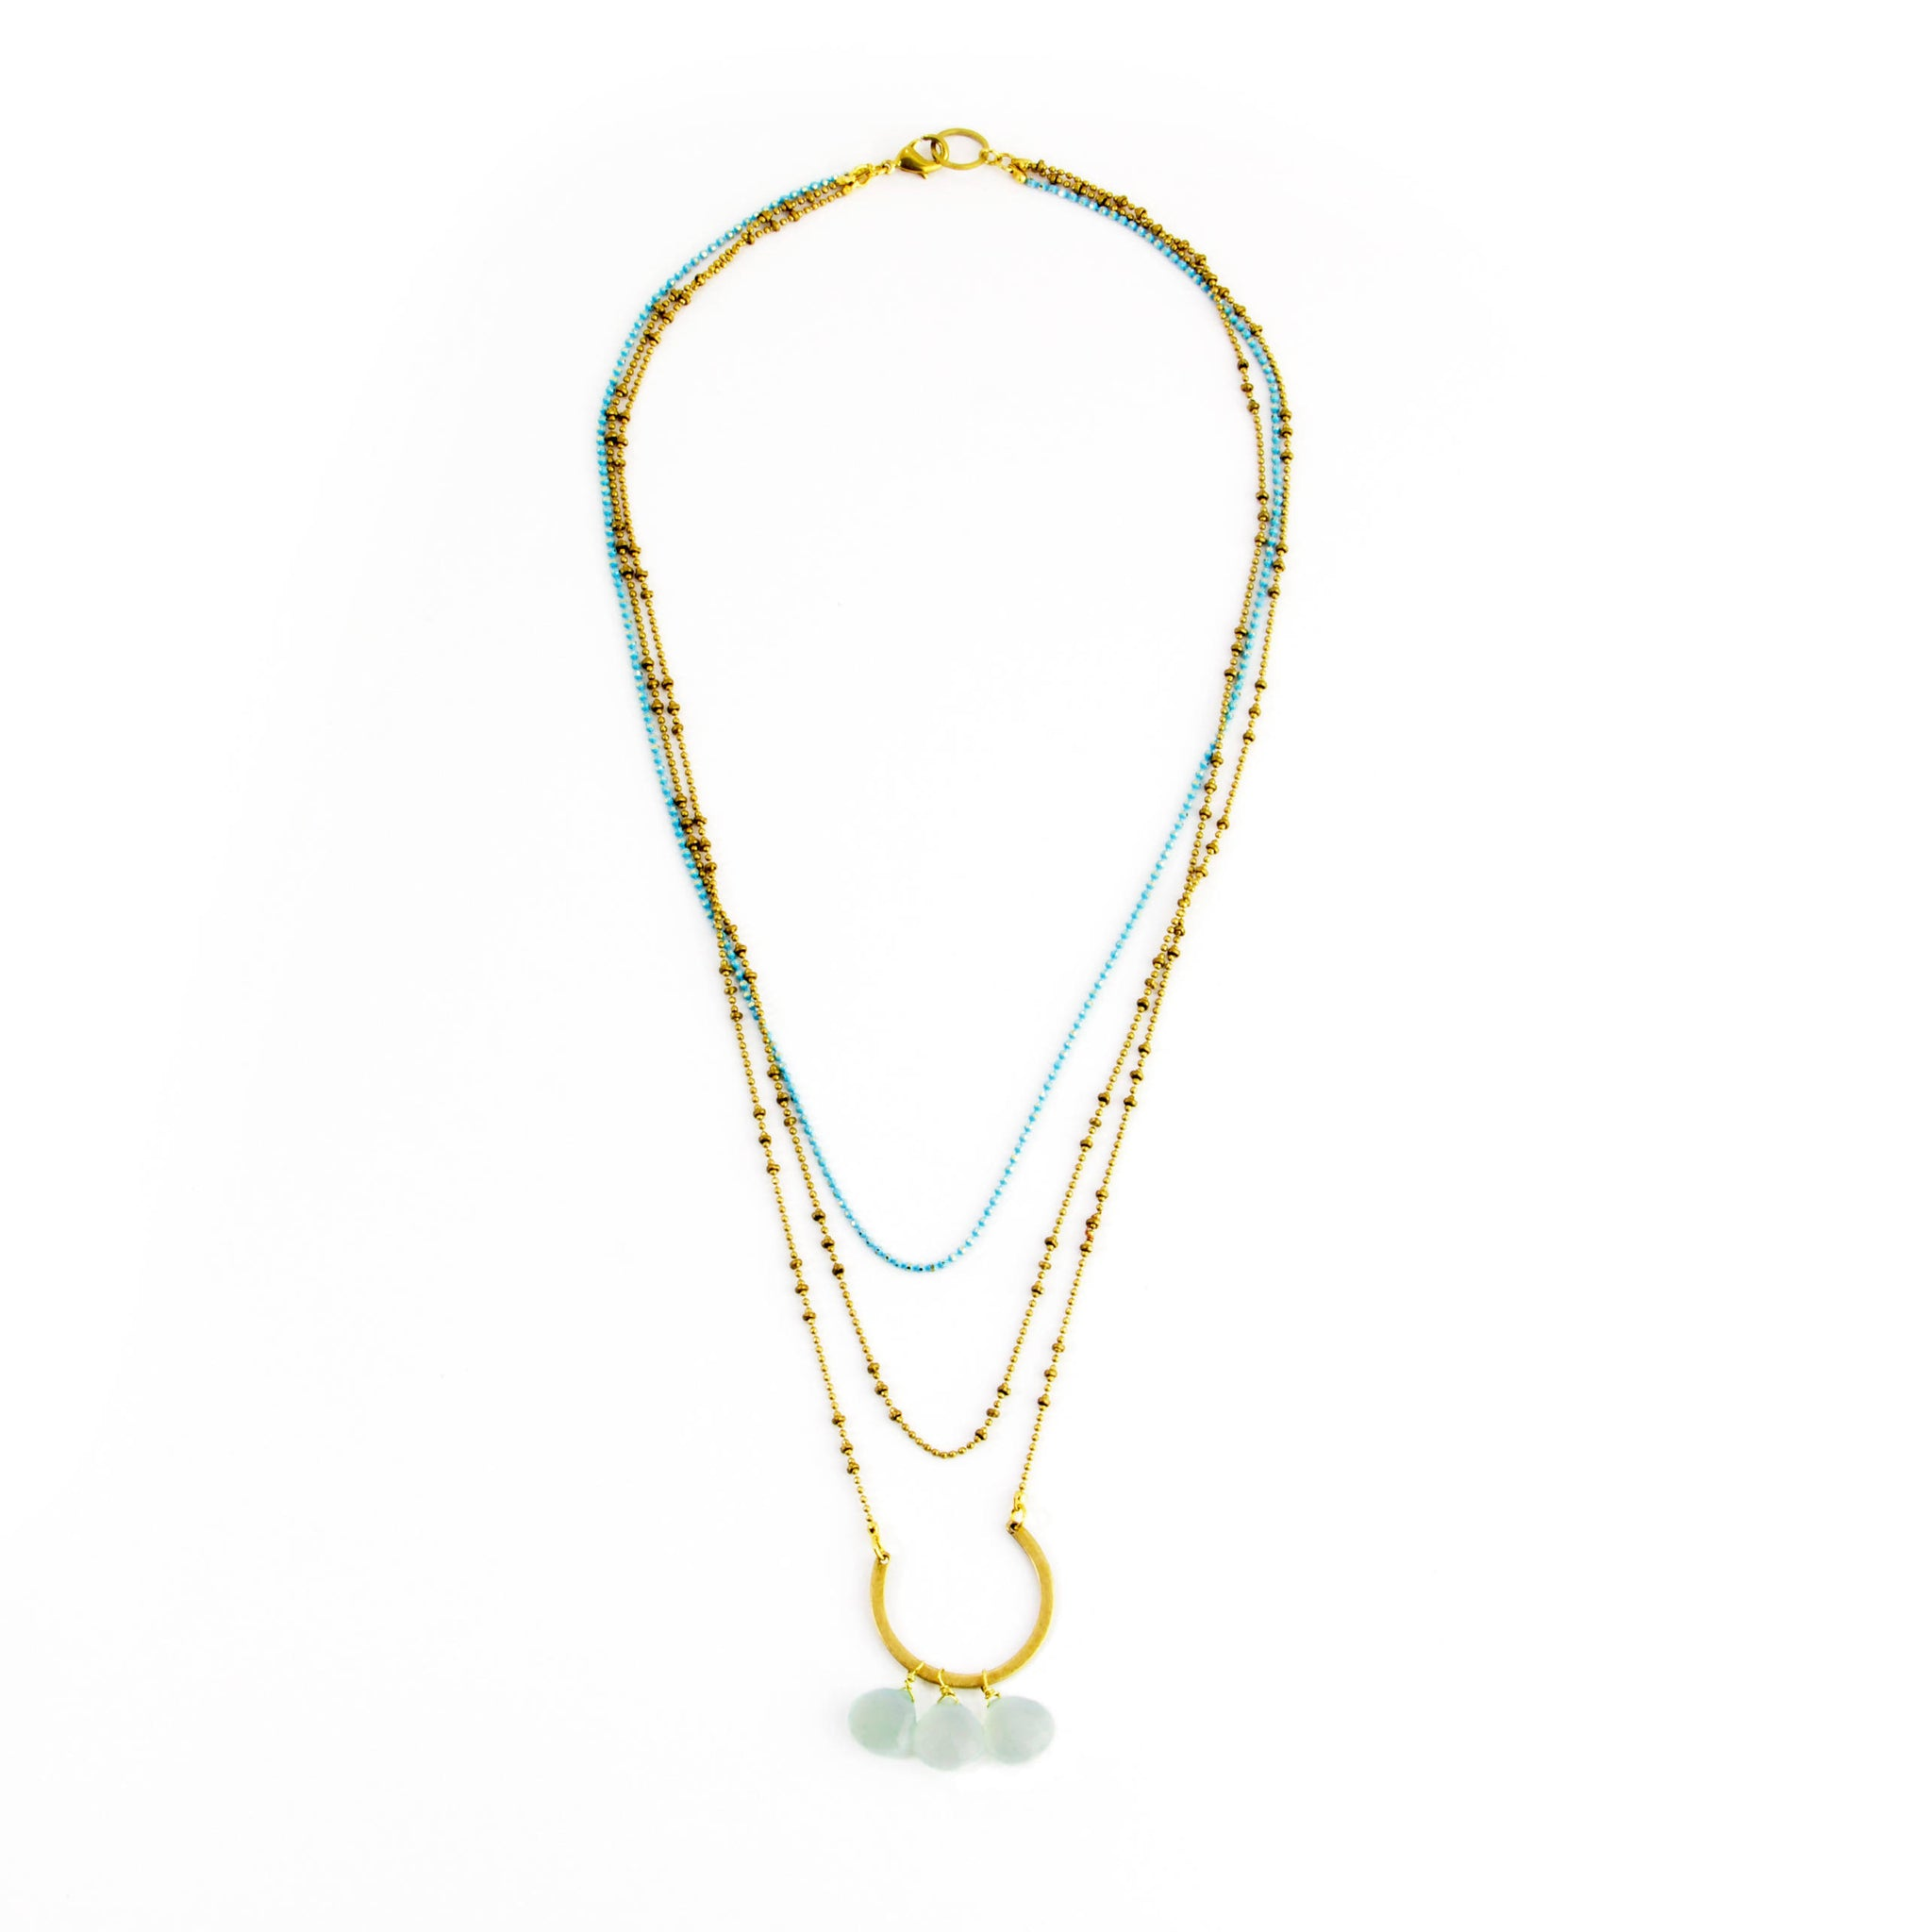 Triple Drape Stone Necklace – Aqua Chalcedony